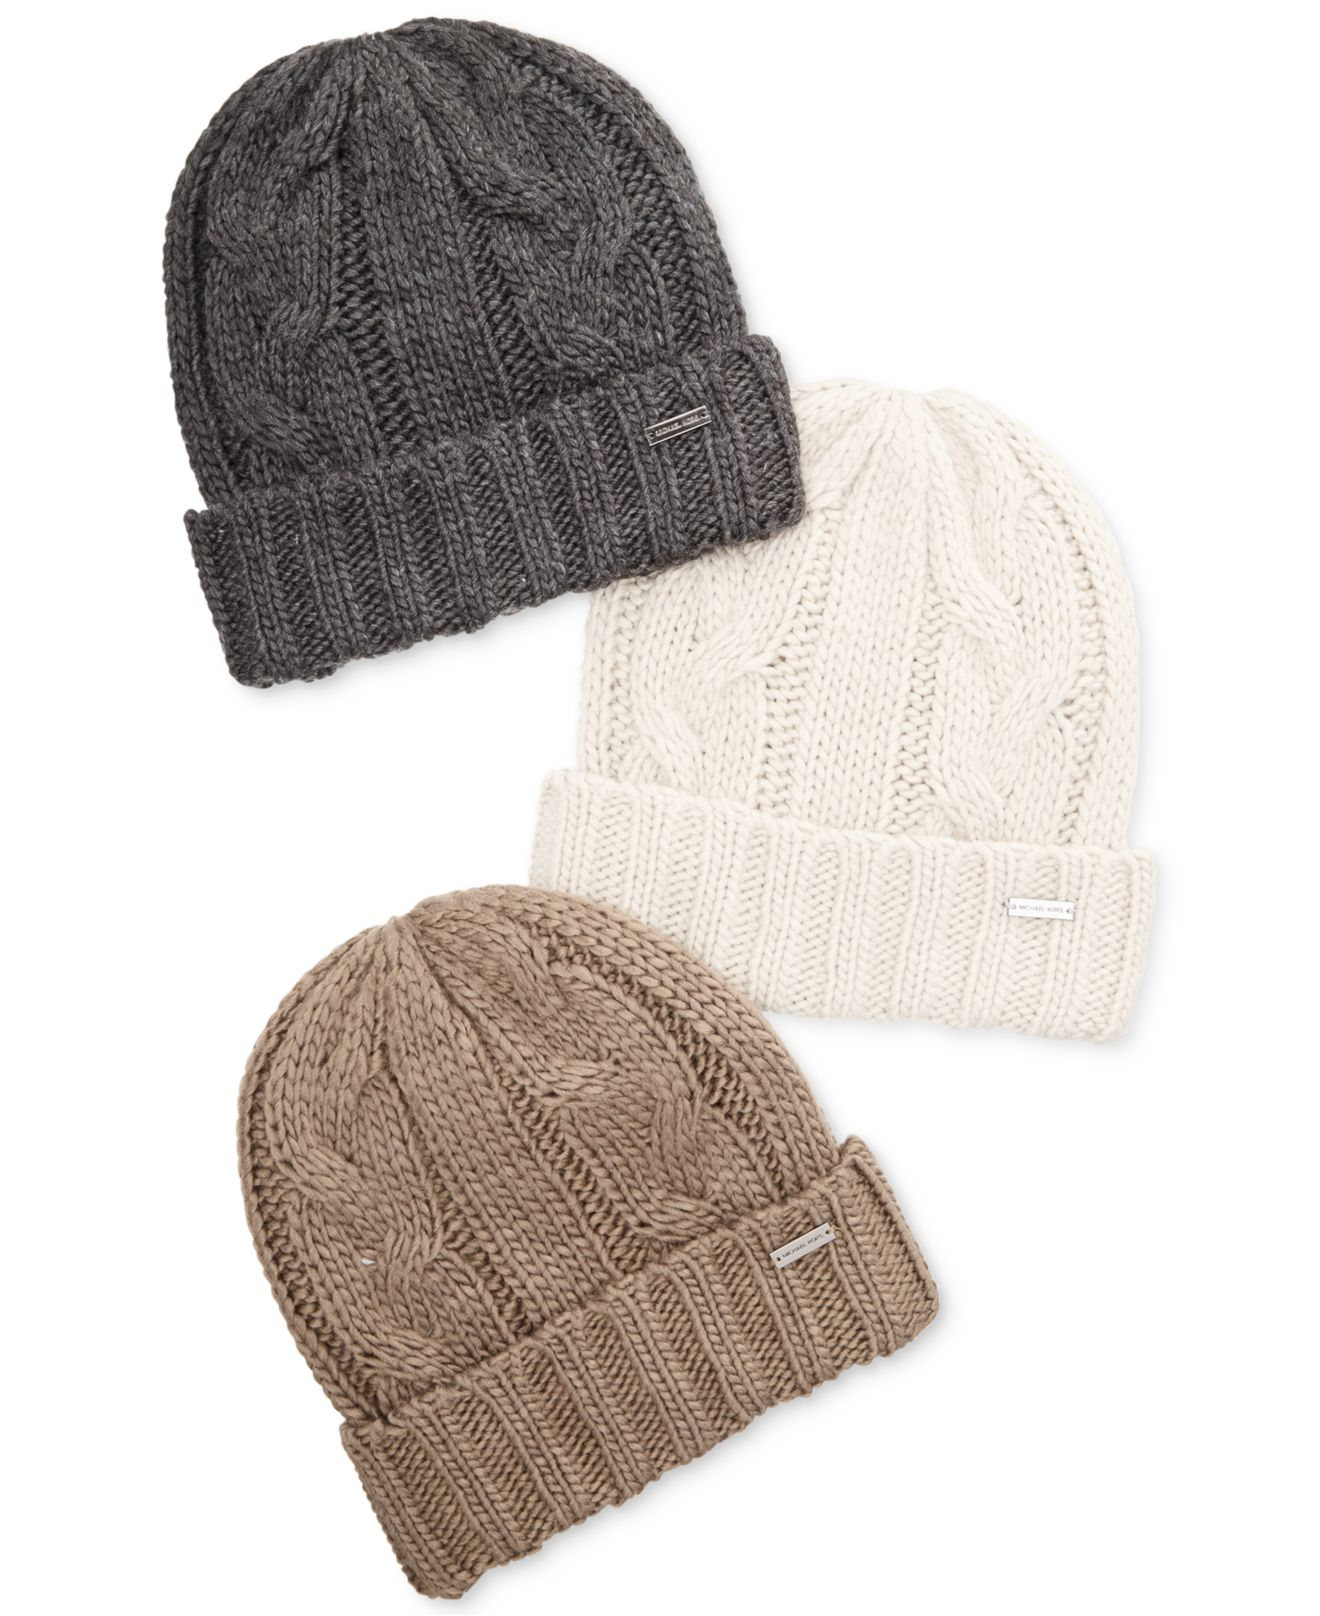 Lyst - Michael Kors Hand-Knit Cable Cuff Hat in Gray for Men ea4611bba61